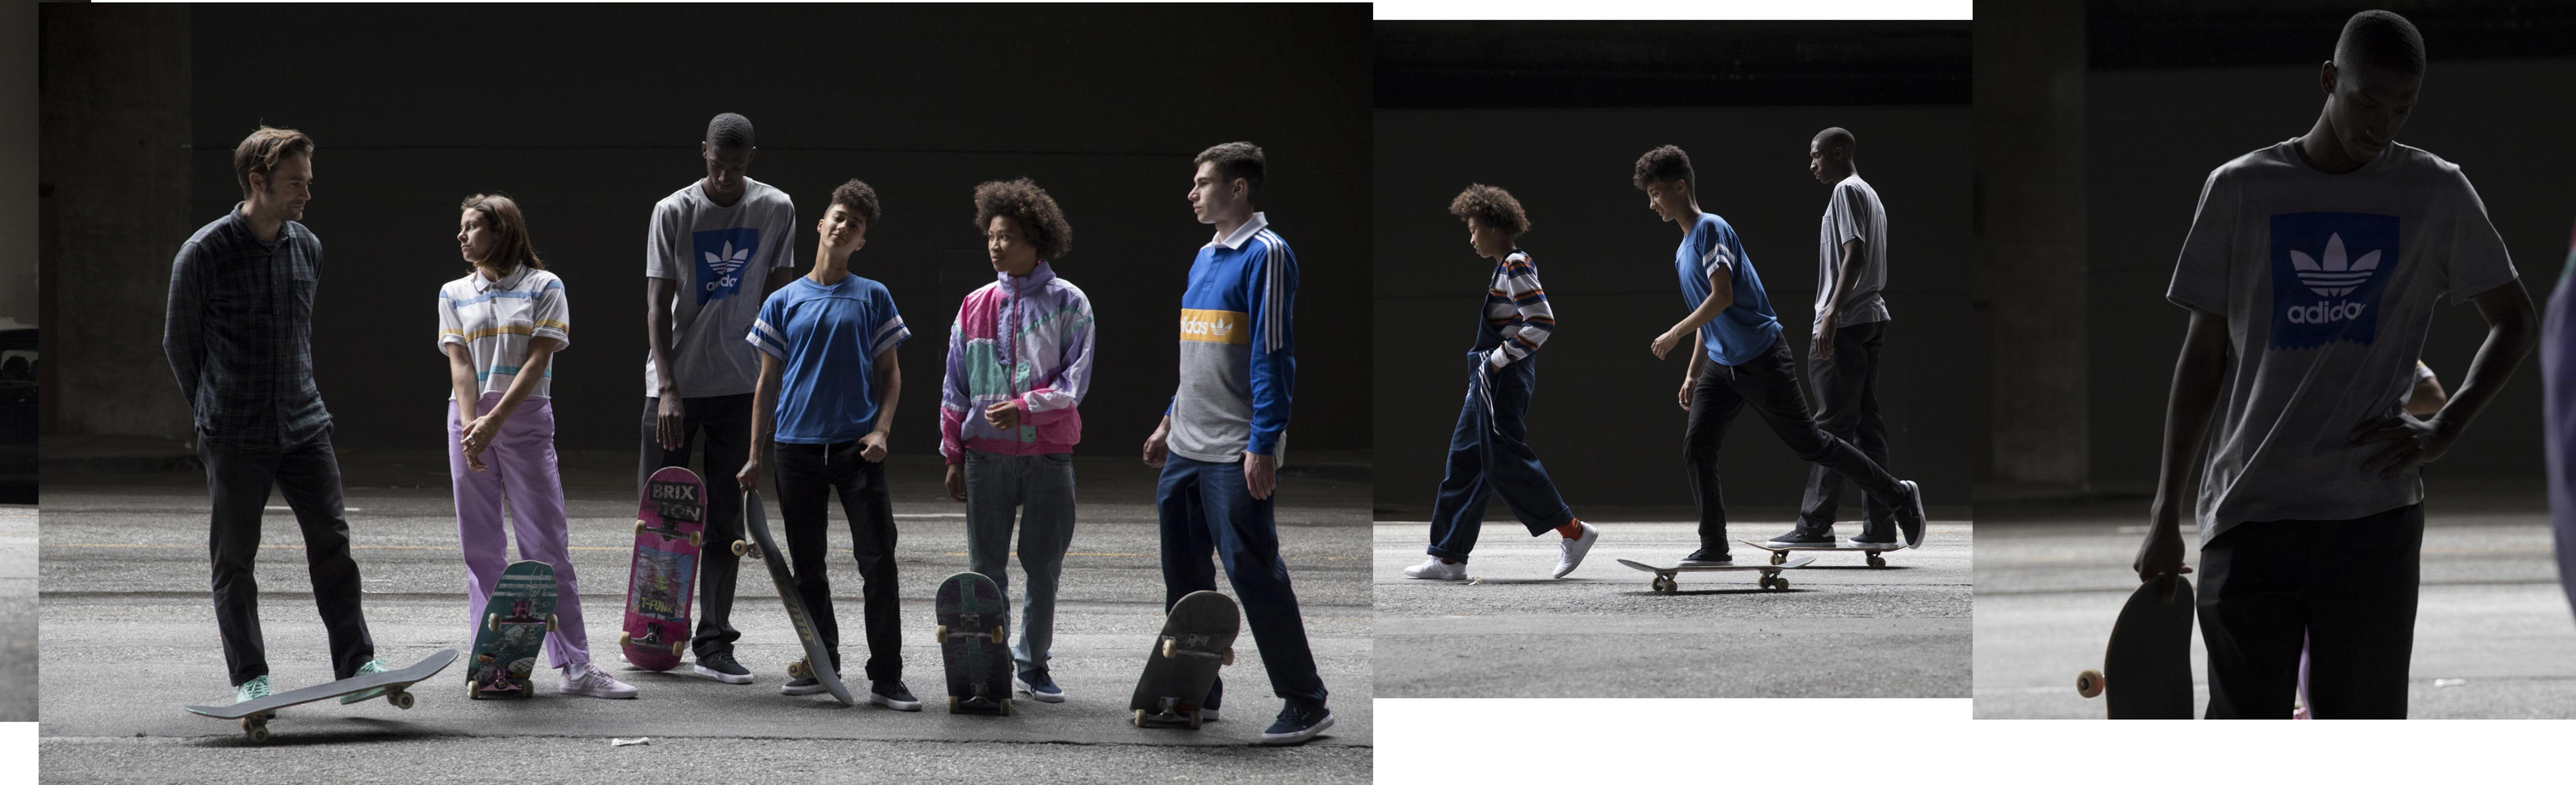 ADIDAS-LOOK-3-COLLAGE-left-side